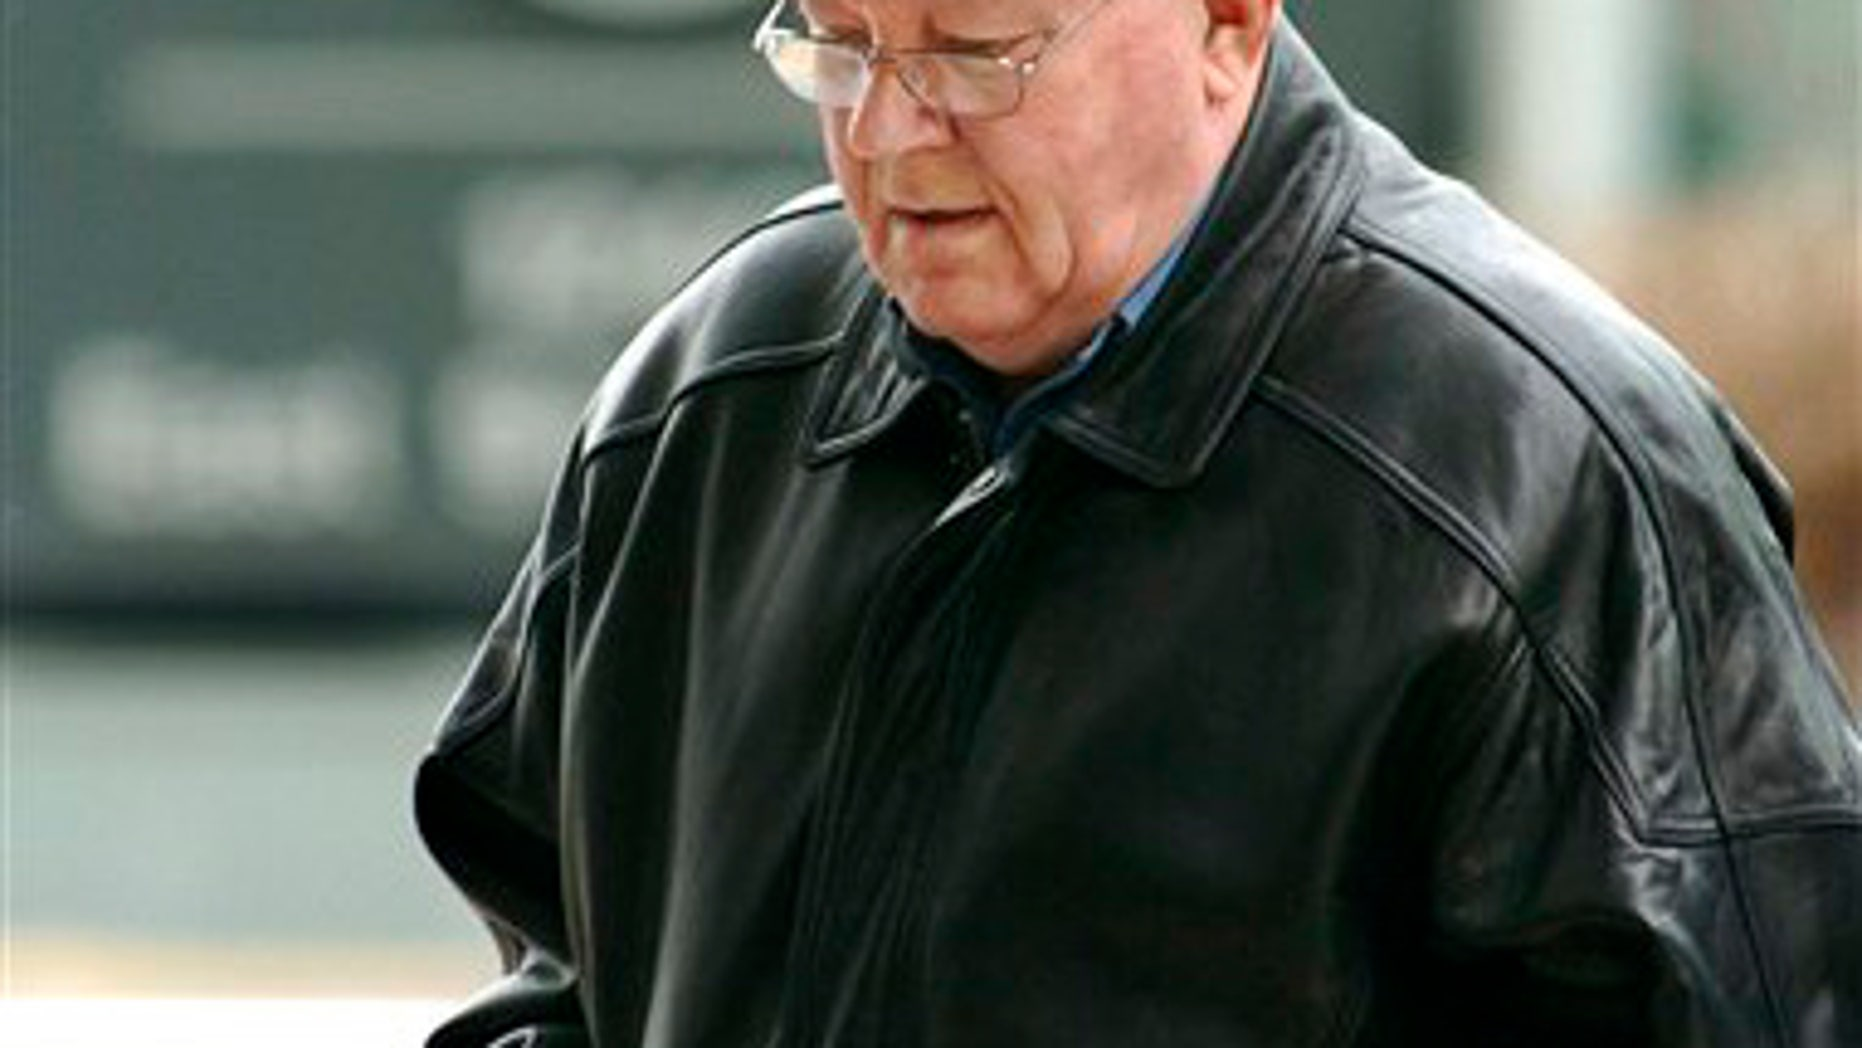 Feb. 28, 2005: Accused Nazi death camp guard John Demjanjuk arrives at the federal building in Cleveland.